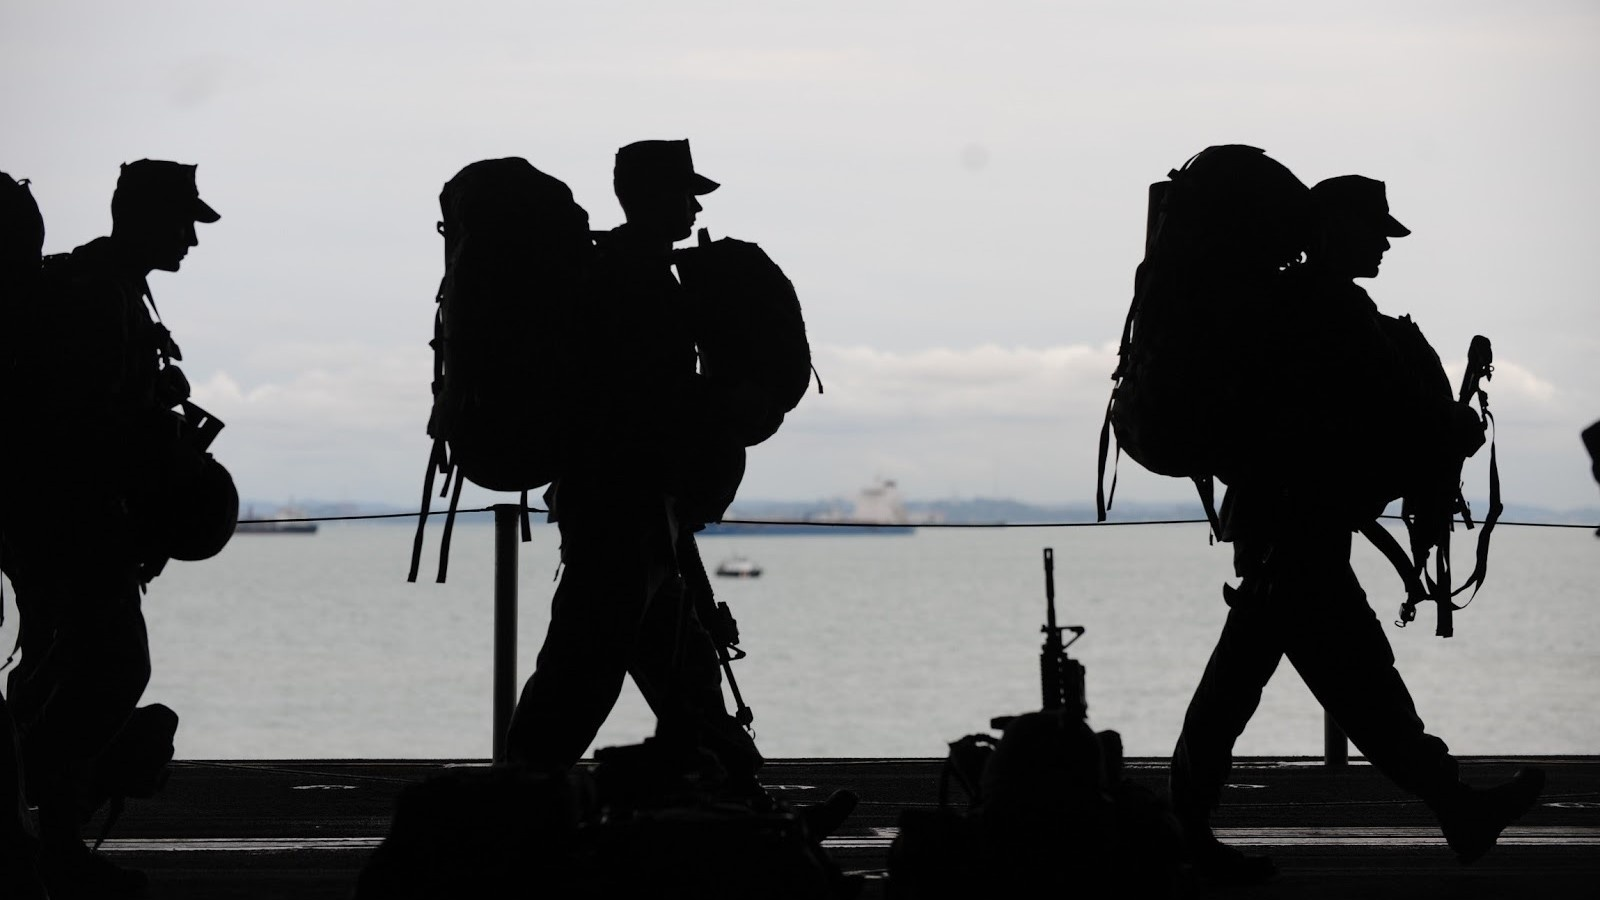 military men walking